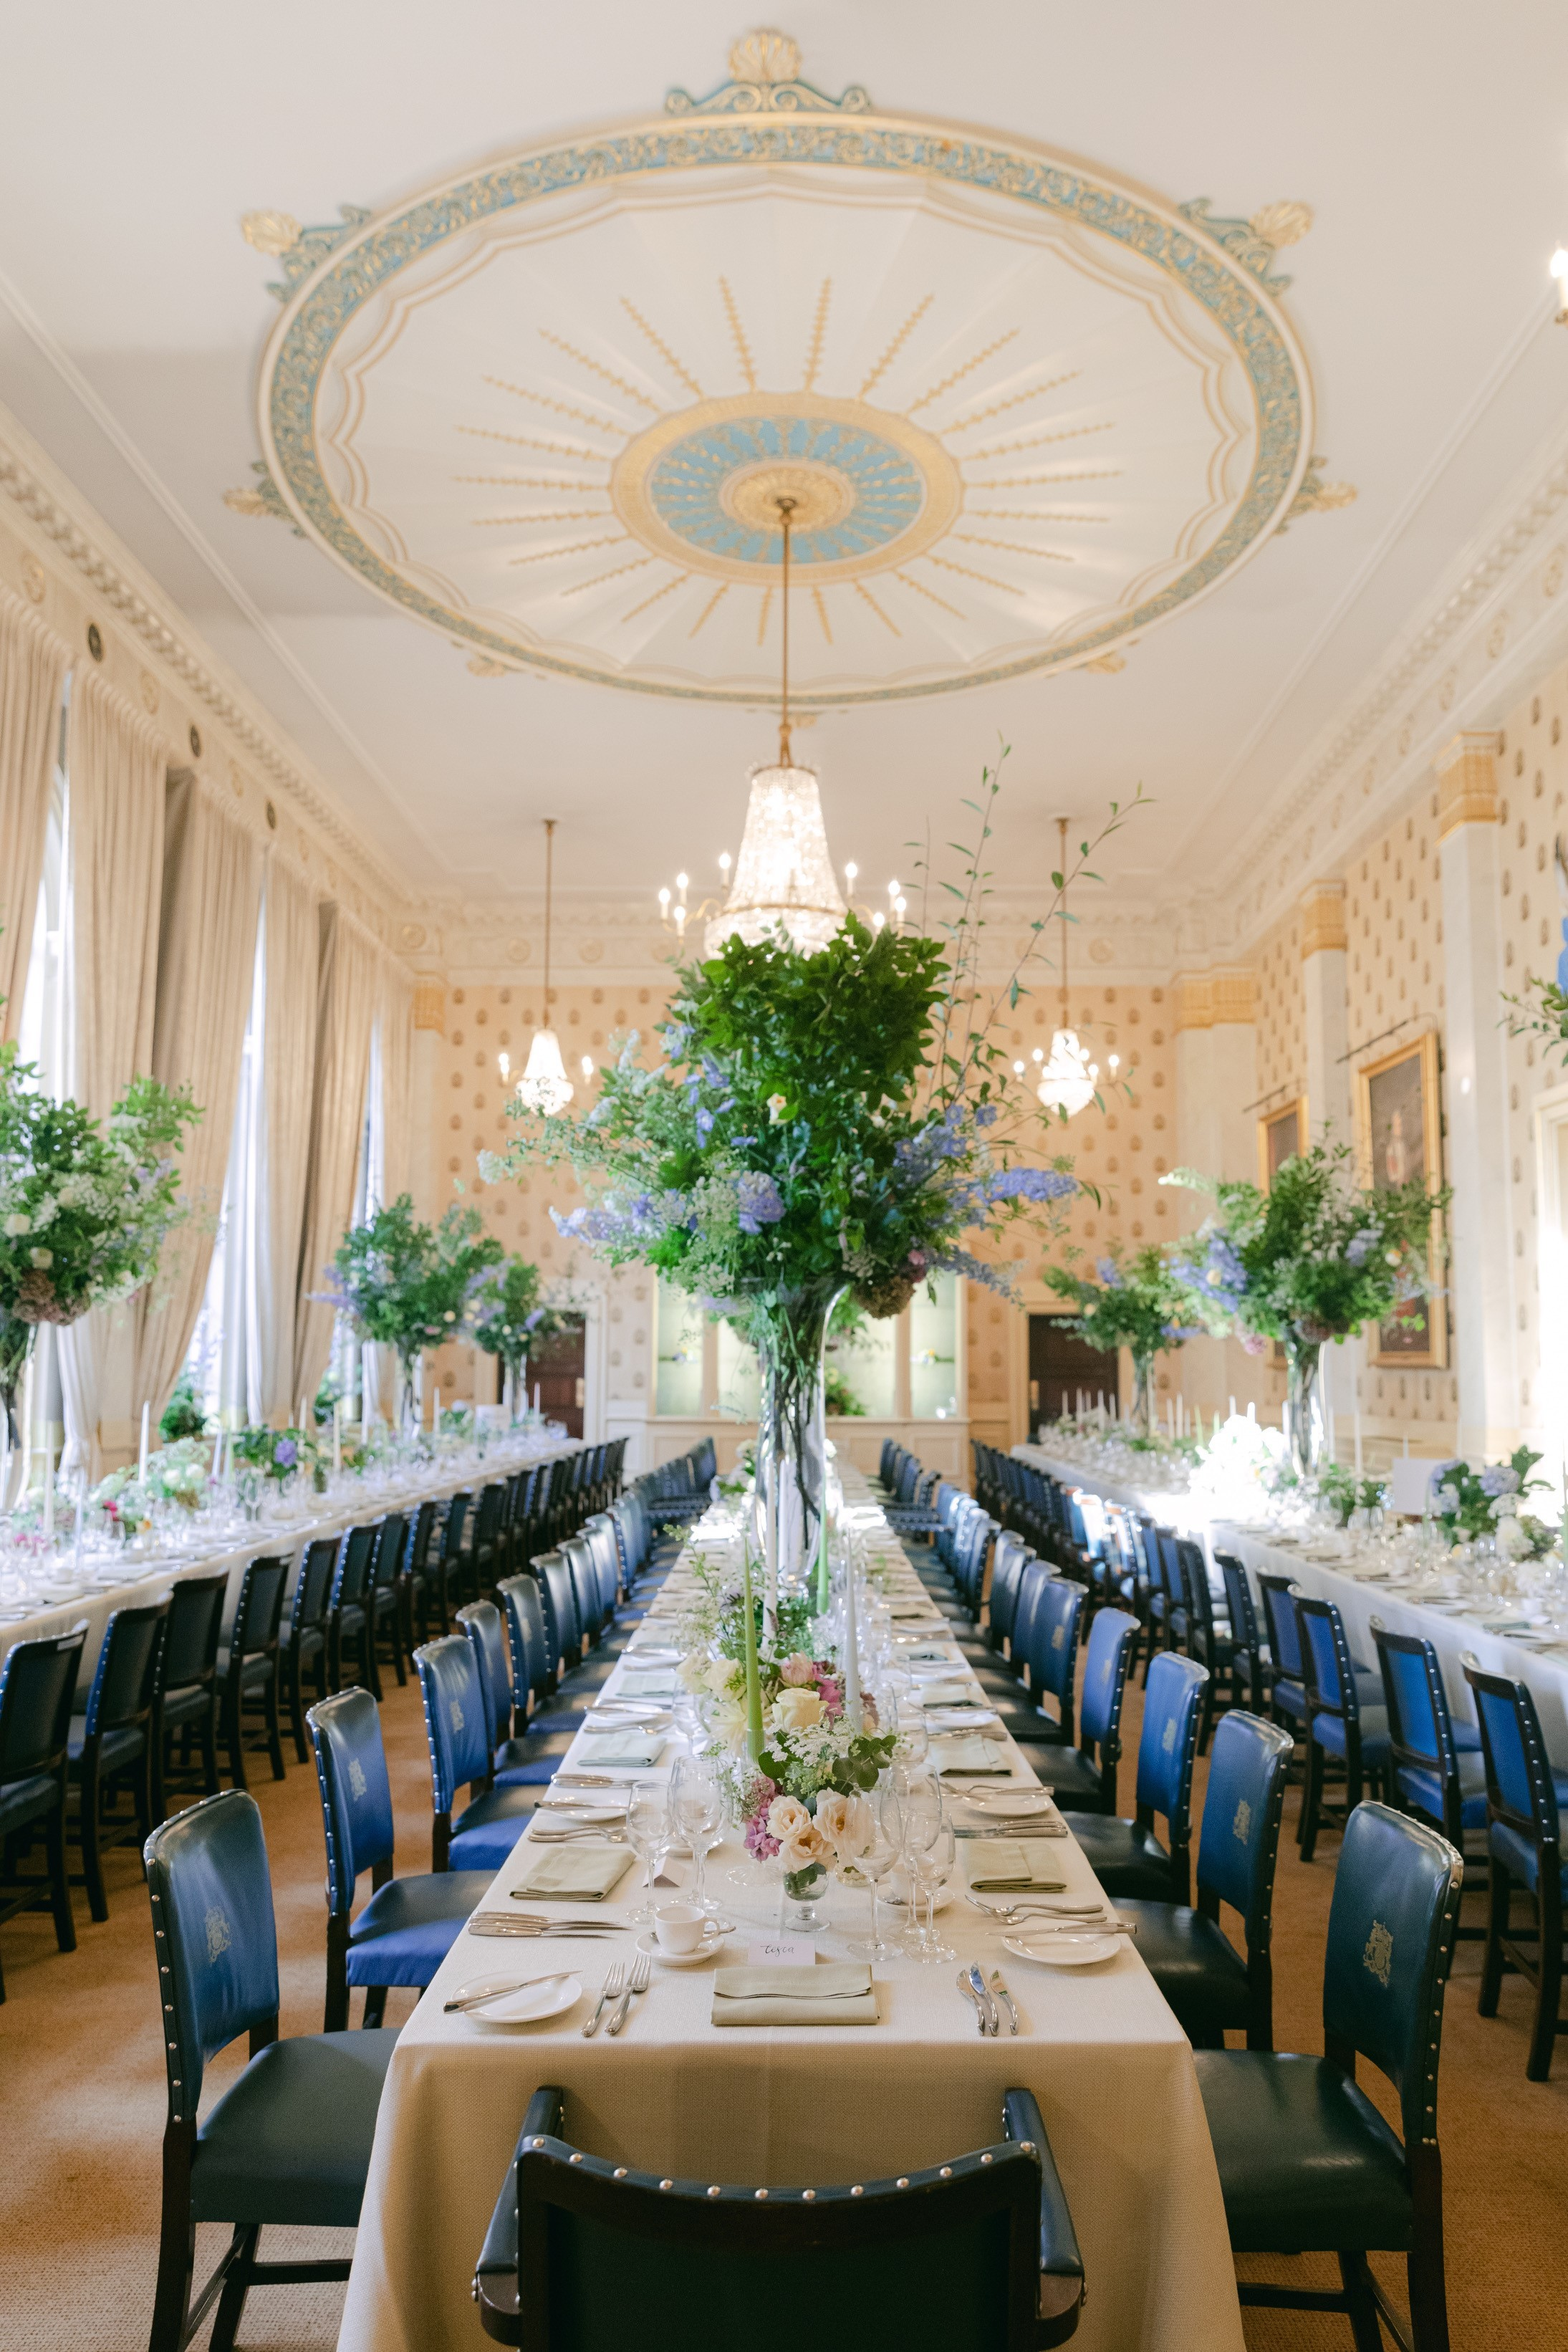 From a formal wedding breakfast to a casual BBQ, every wedding is a reason to celebrate